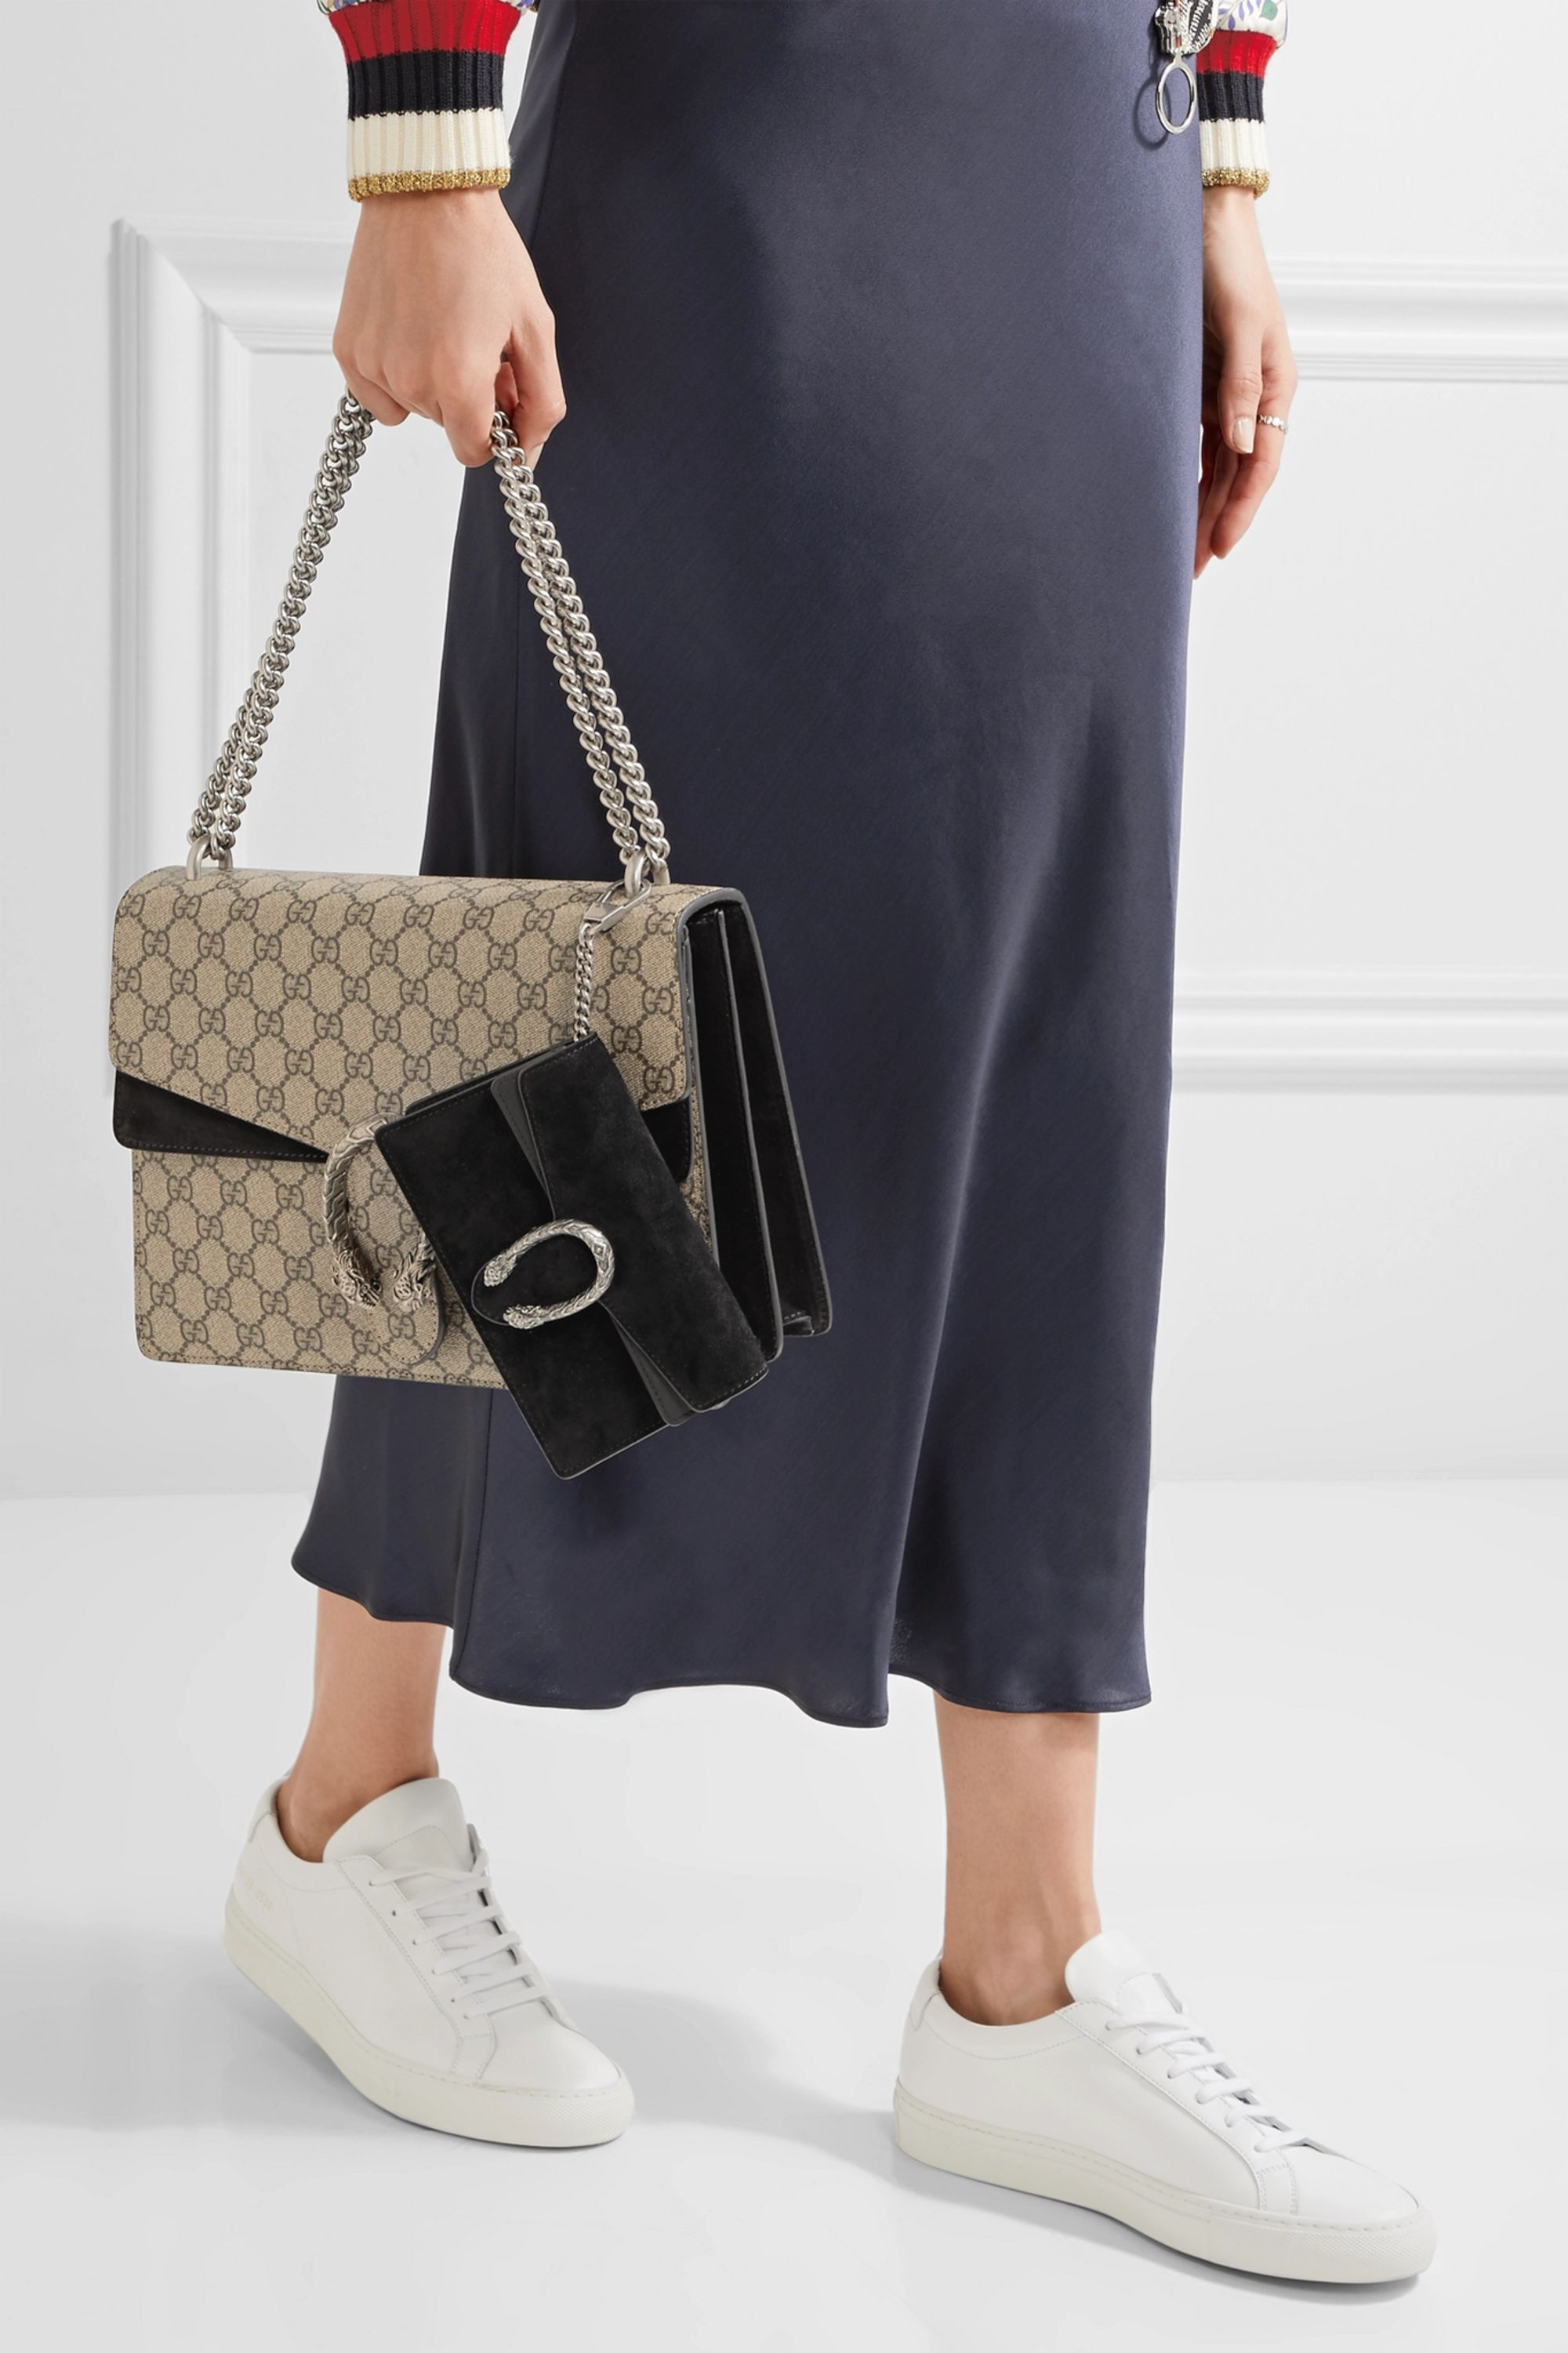 Gucci Dionysus super mini suede shoulder bag